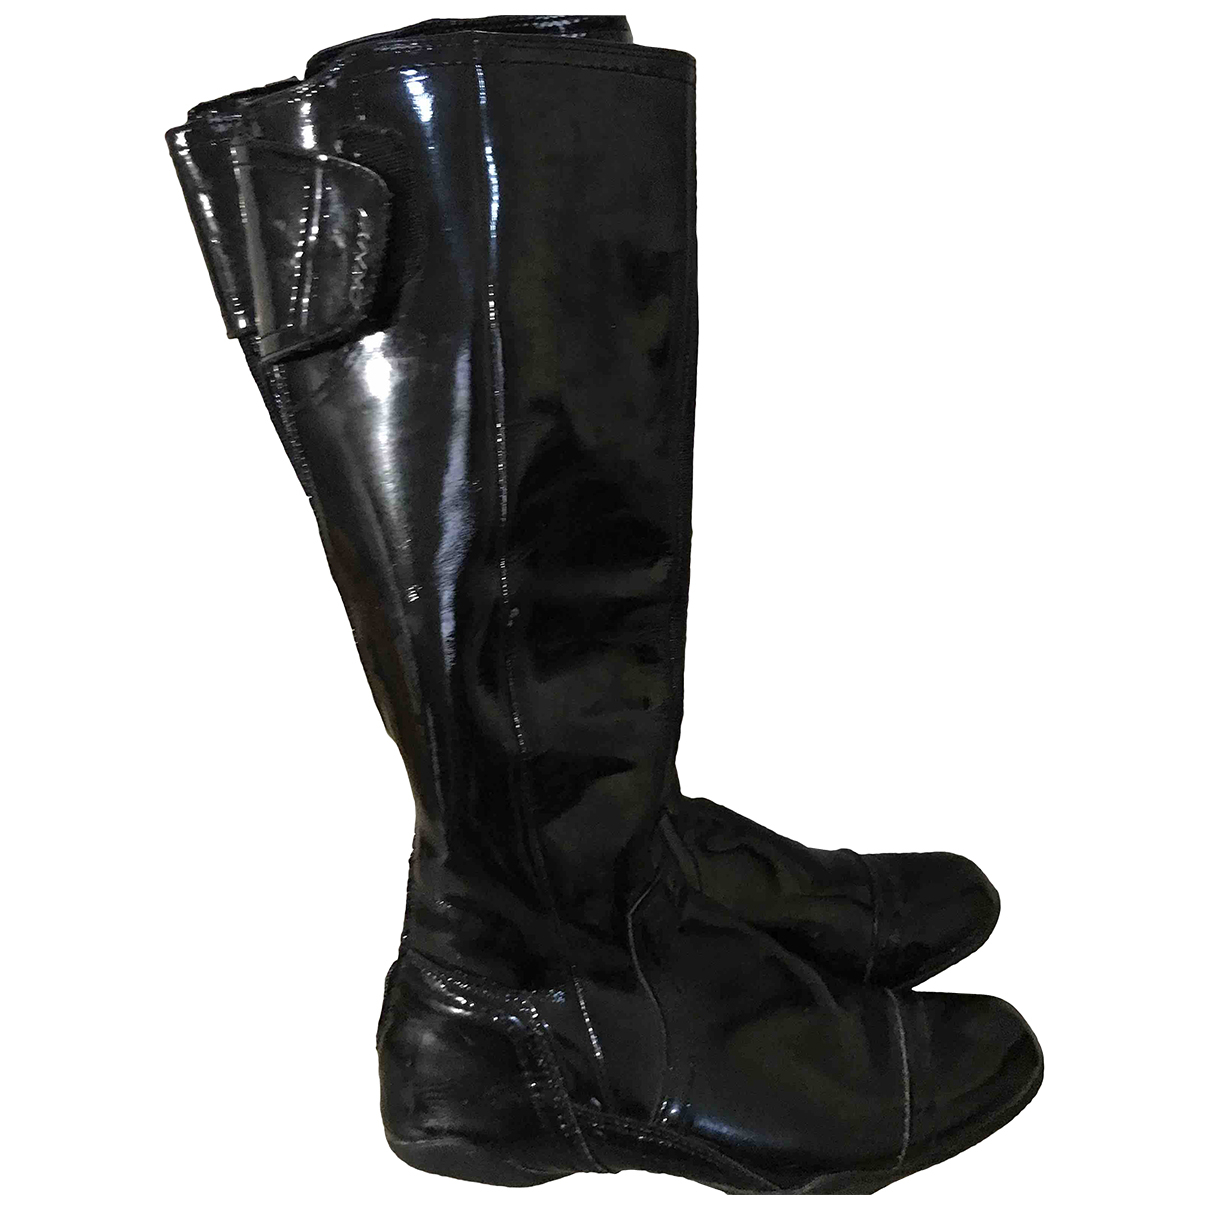 Dkny N Black Patent leather Boots for Women 6 UK